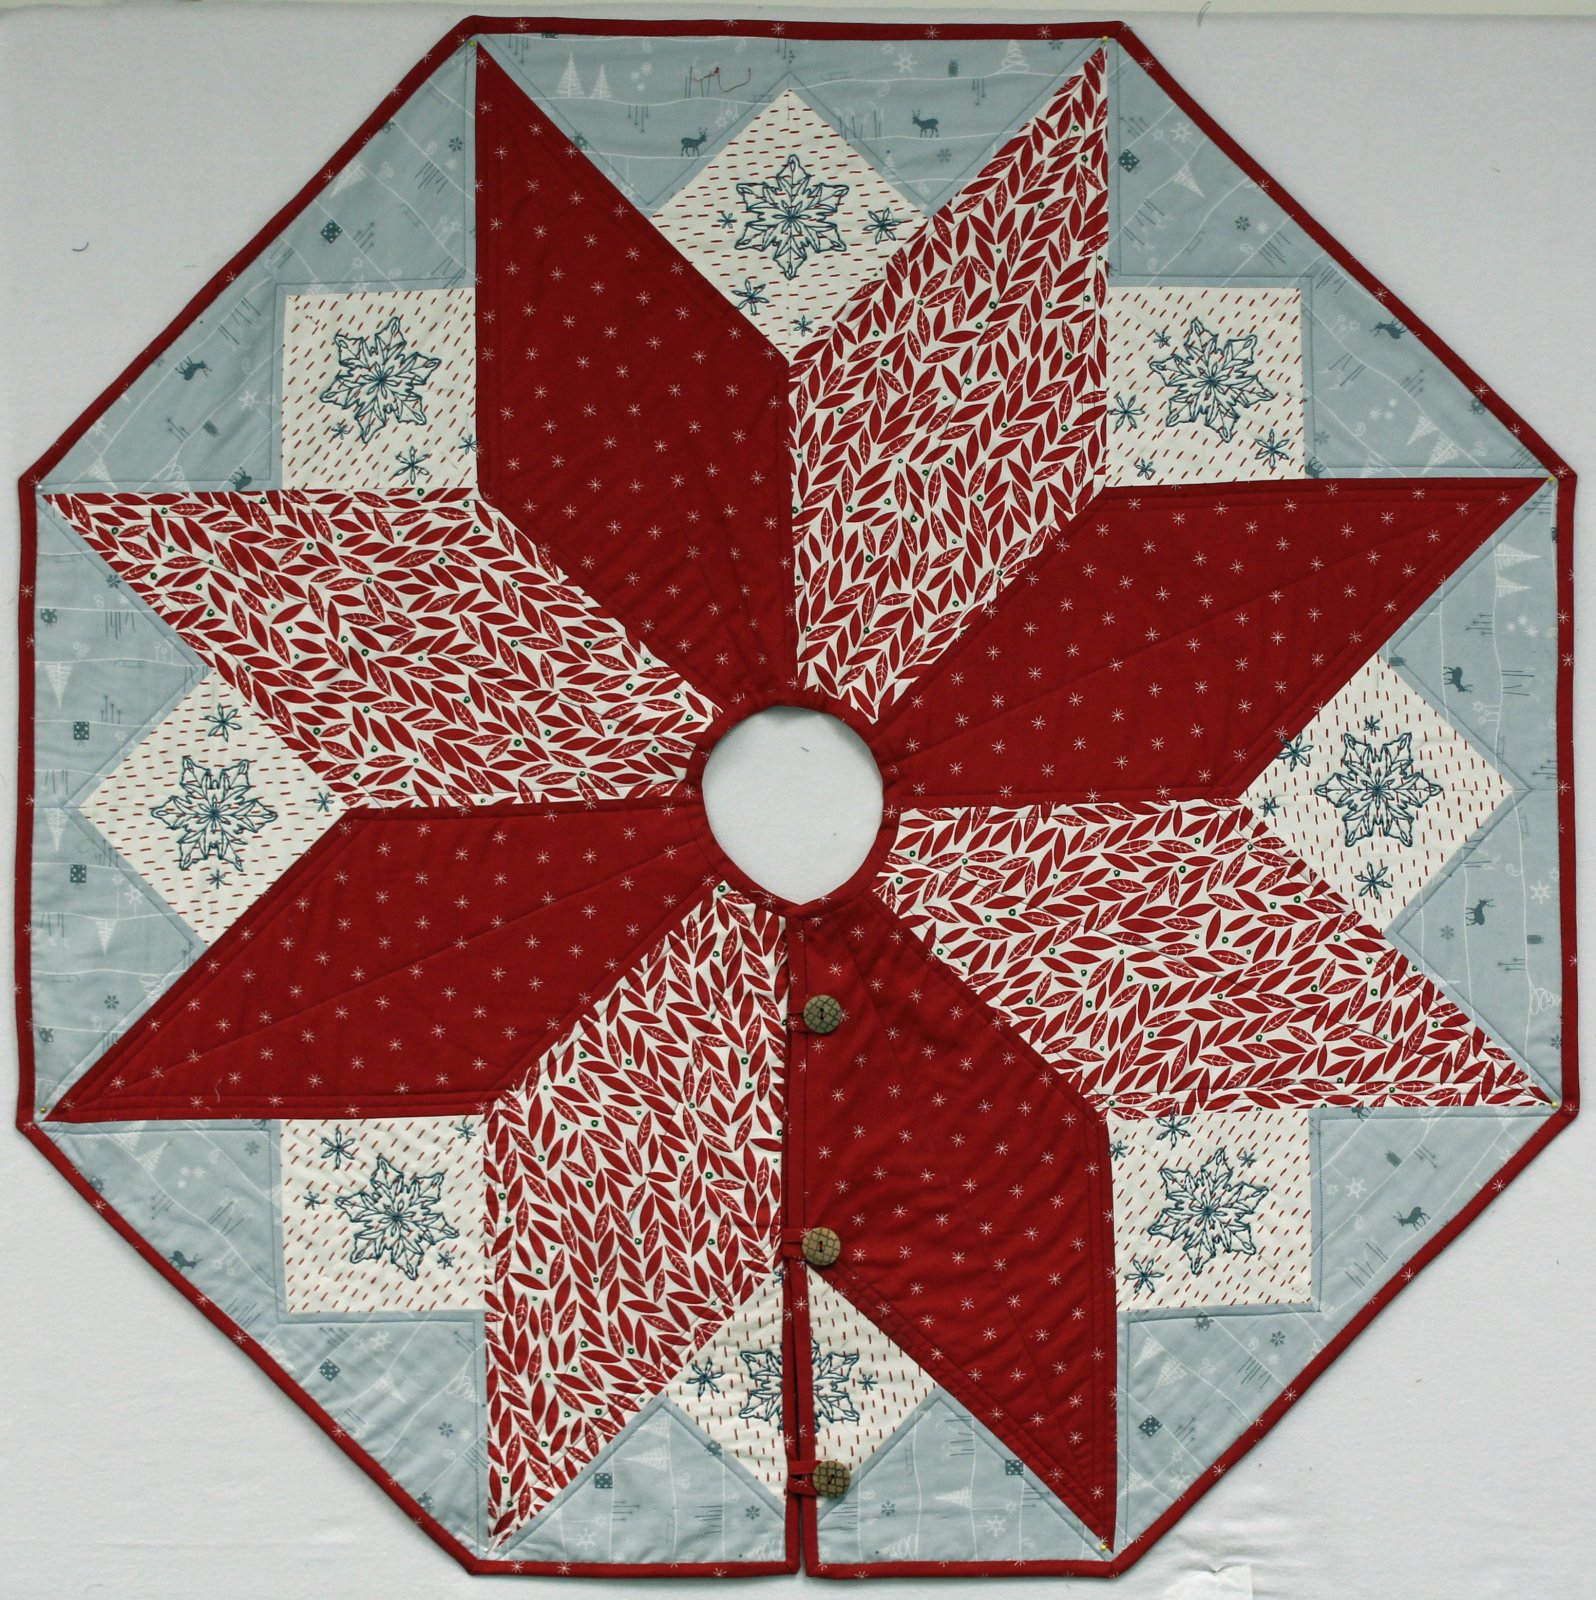 Christmas Tree Skirt Patterns.Scandi Christmas Tree Skirt Pattern 721762486917